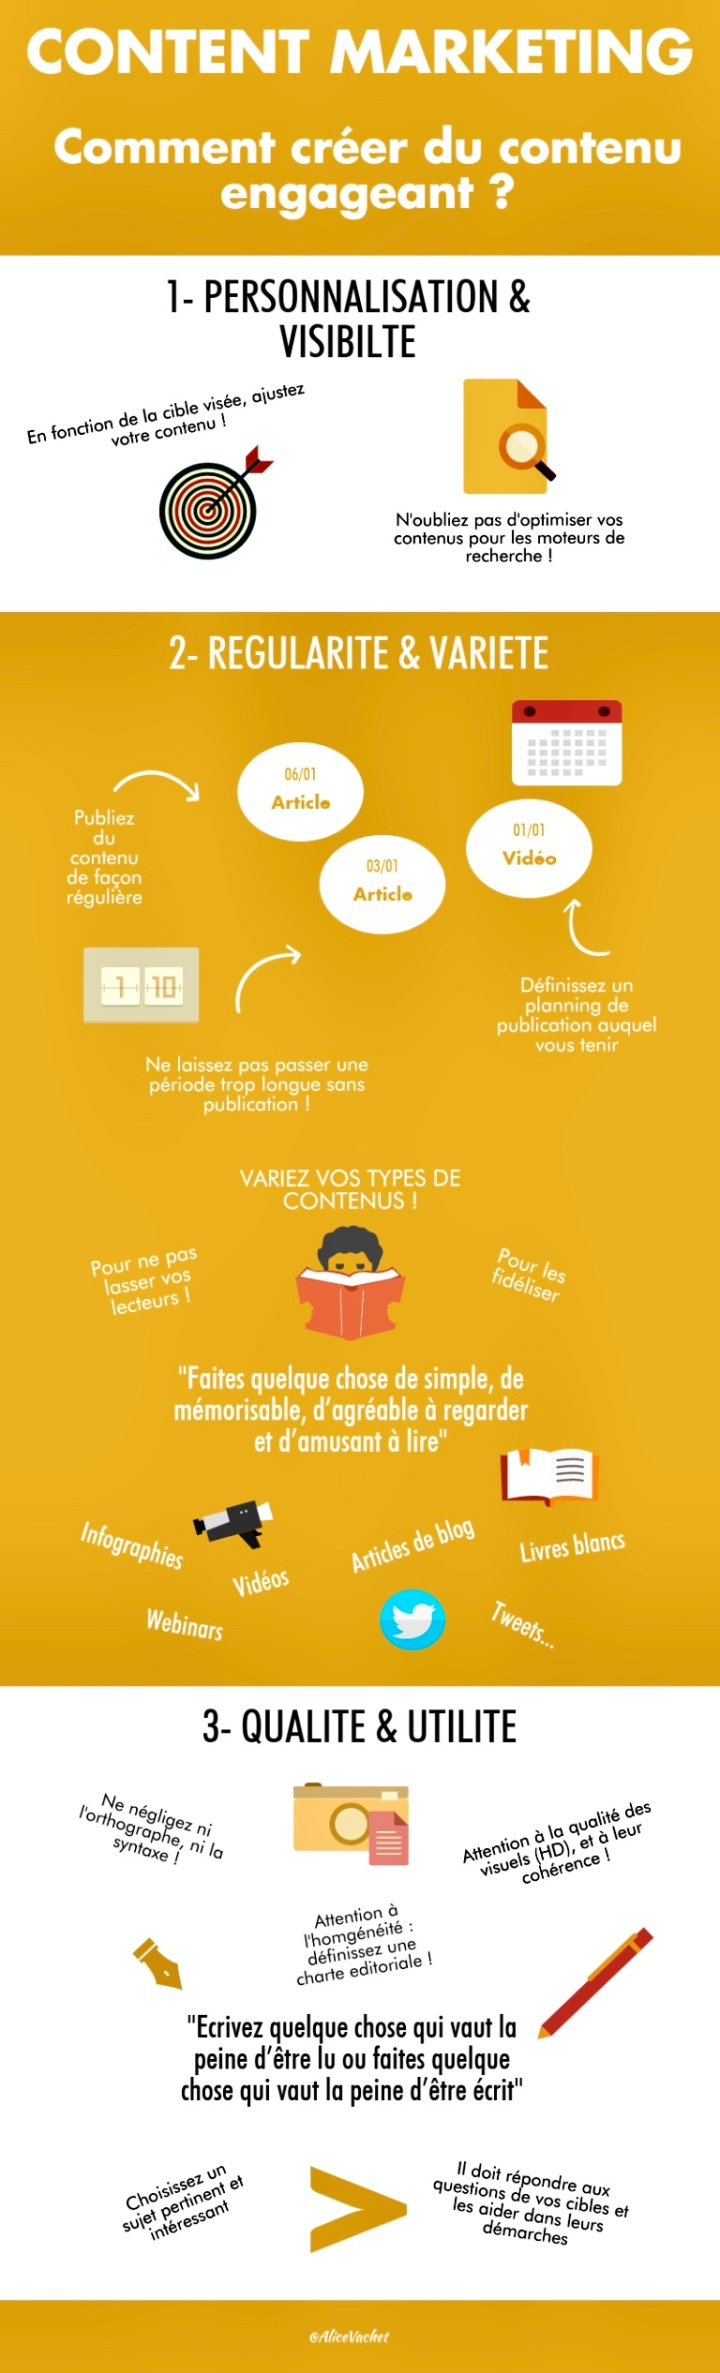 [Infographie] Content Marketing : Comment Créer Du Contenu Engageant ? 🧐